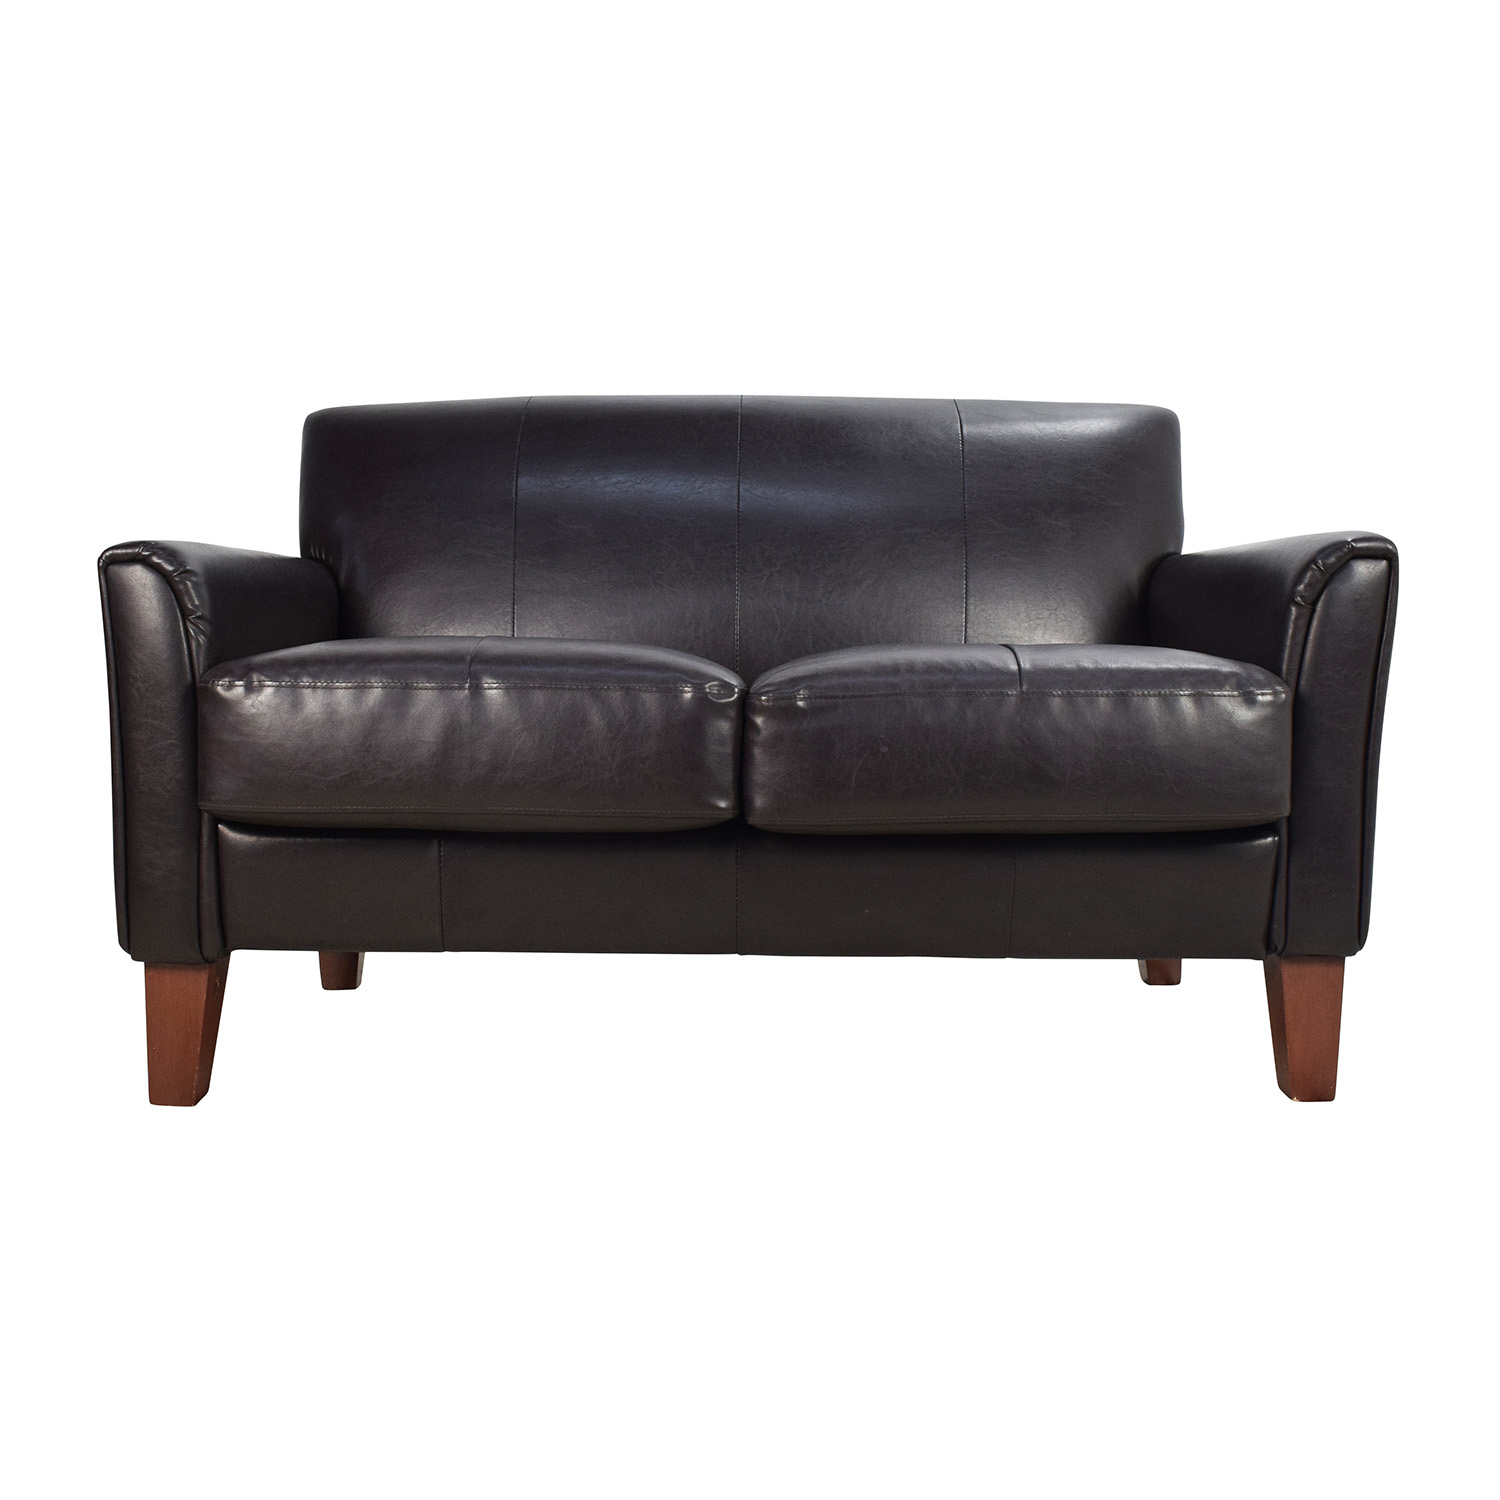 Order Sofas Online Custom Slipcovers And Couch Cover For Any Sofa Online Thesofa